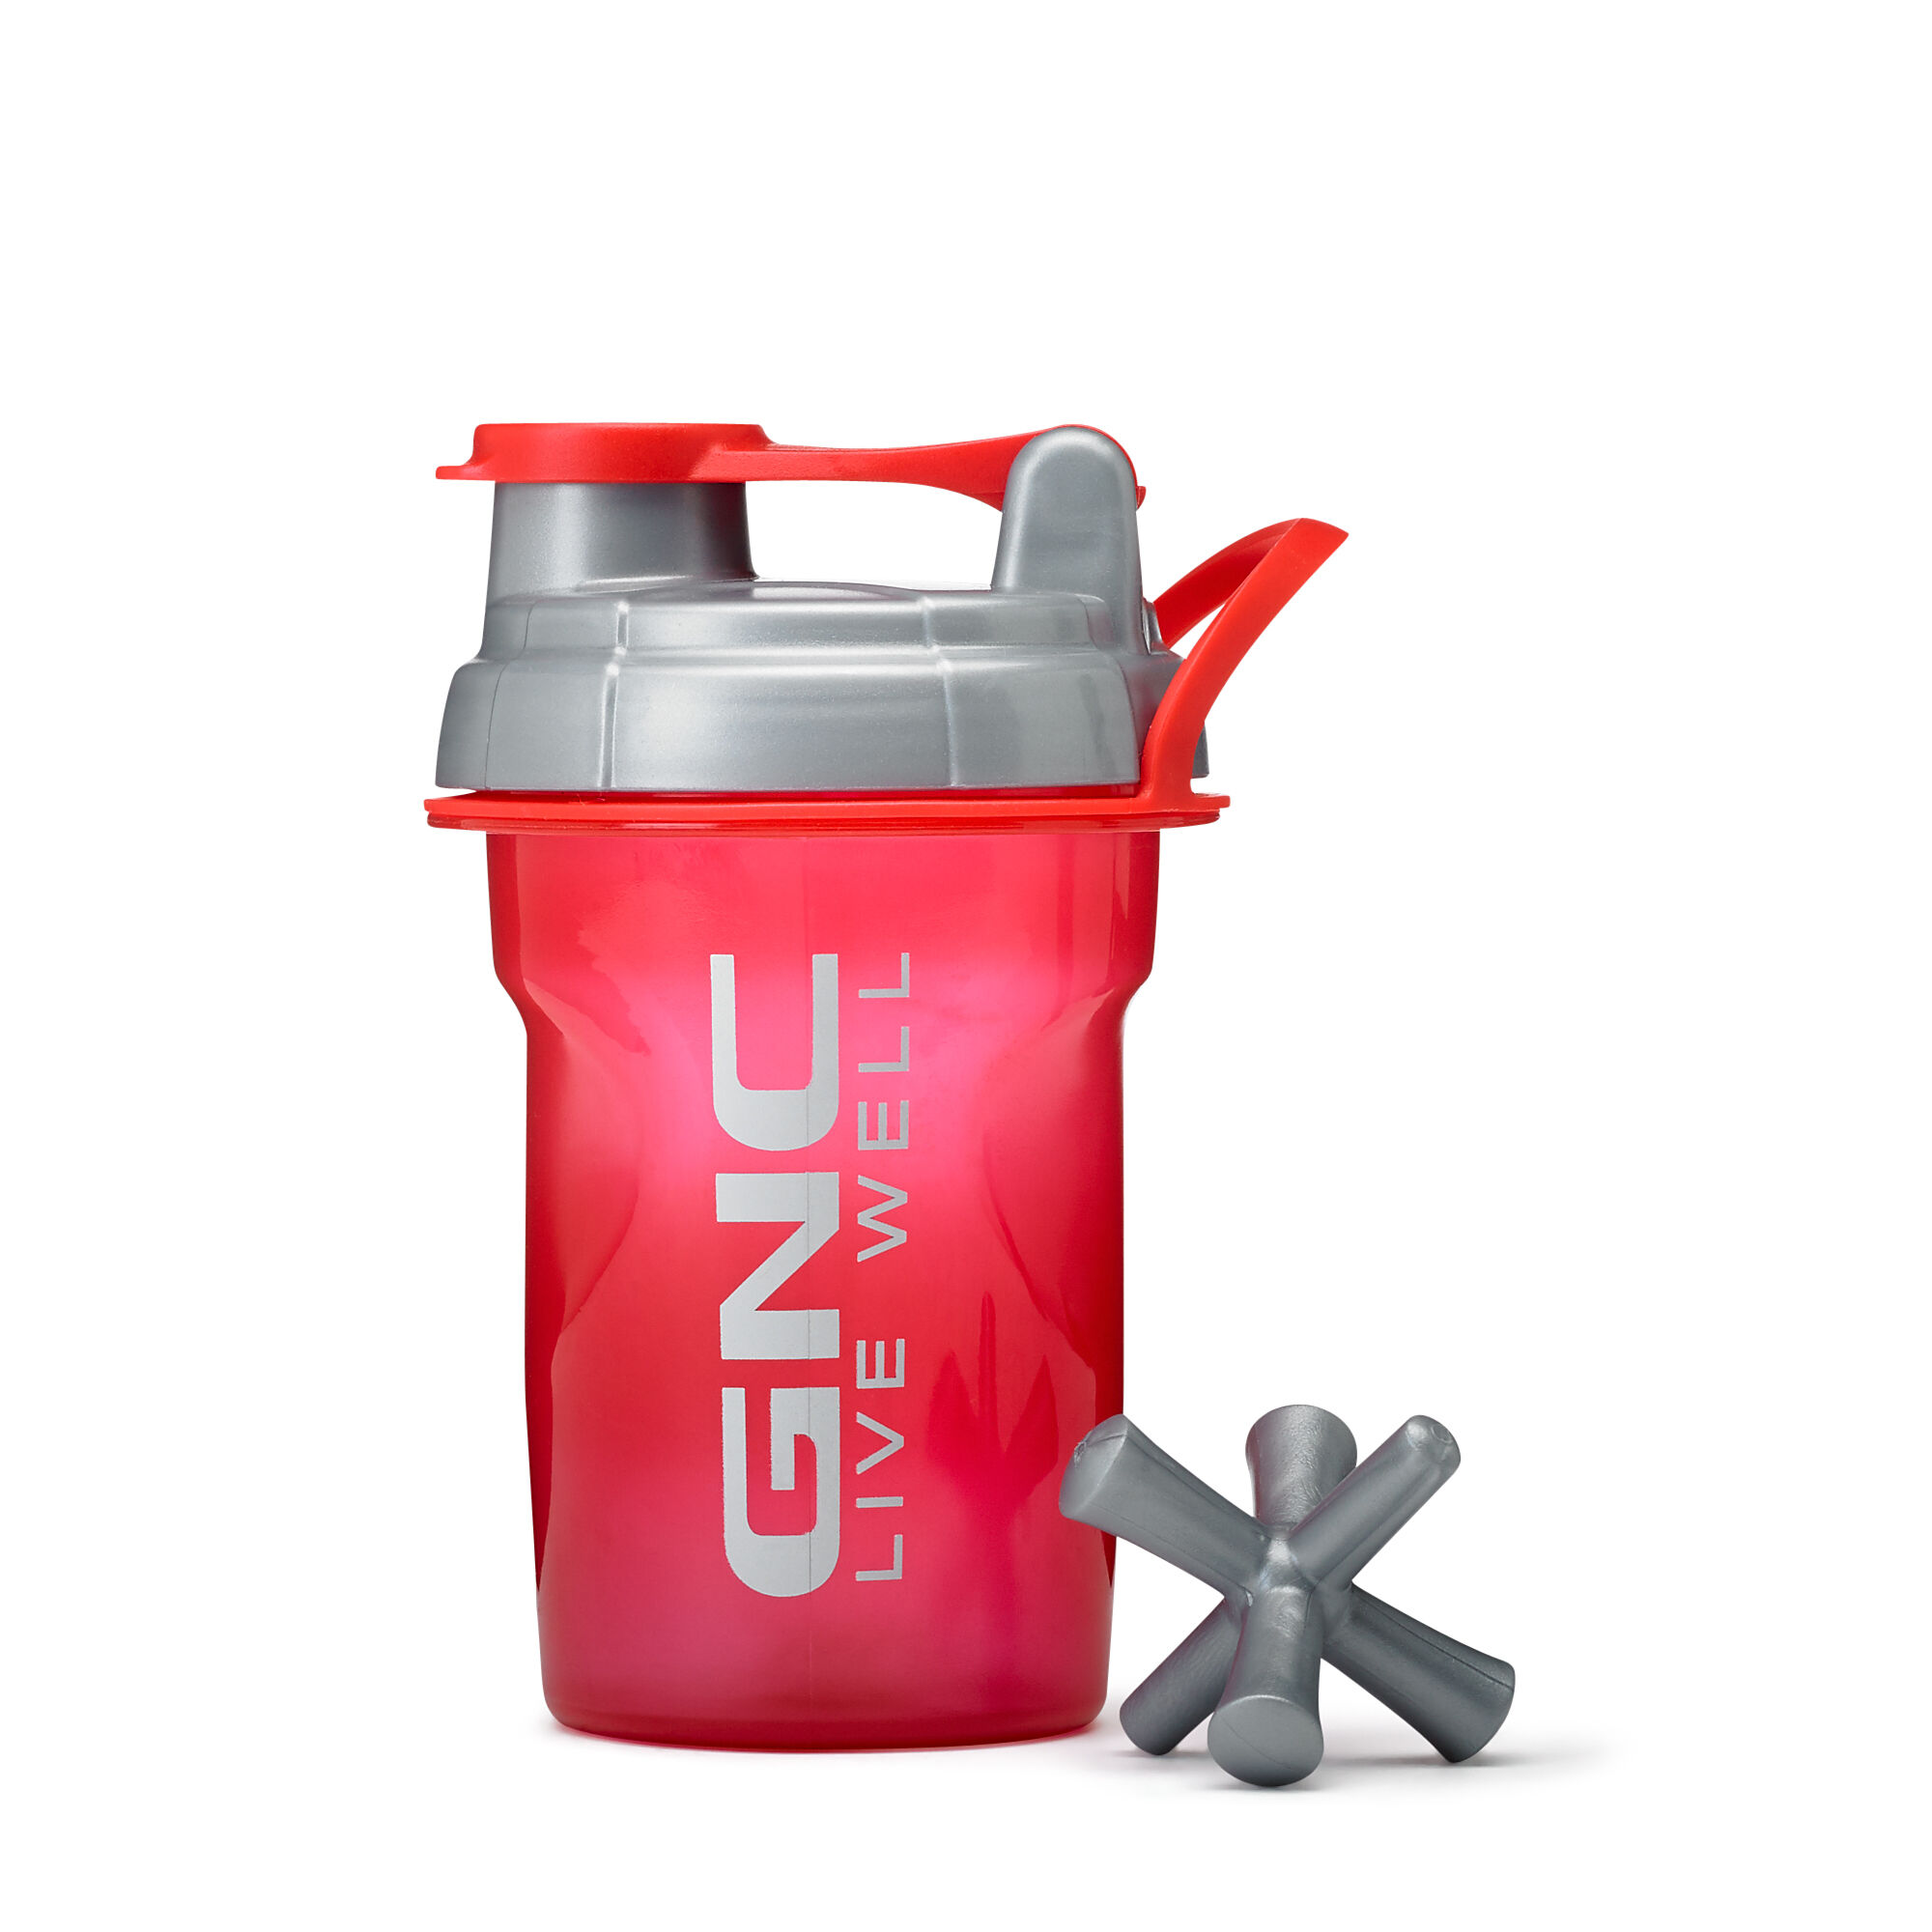 20oz Jaxxg Shaker Cup Red 1 Item(s) Gnc Mixers Shakers And Bottles